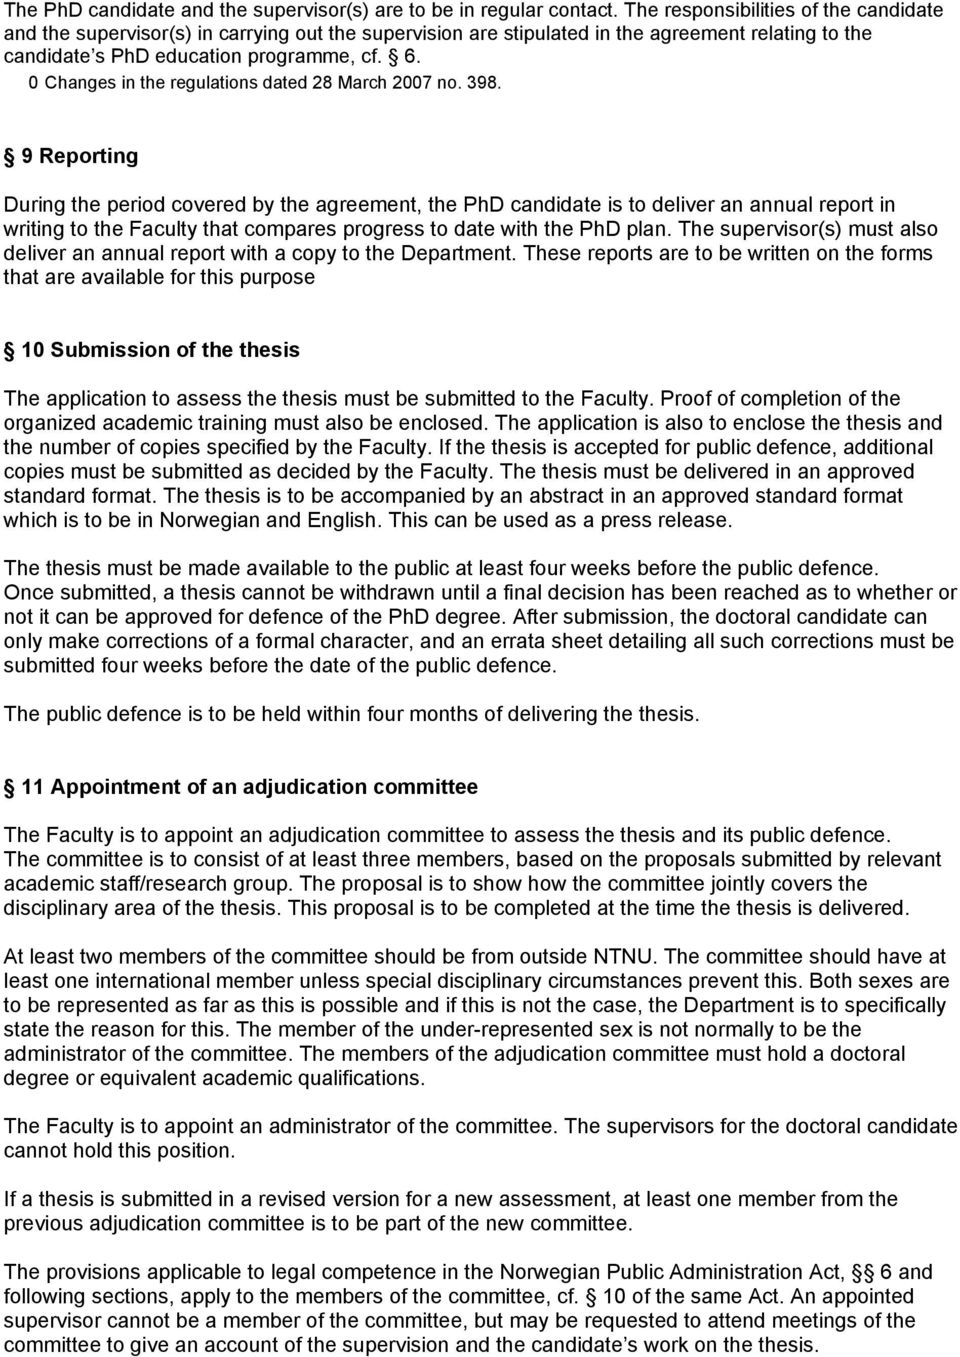 0 Changes in the regulations dated 28 March 2007 no. 398.